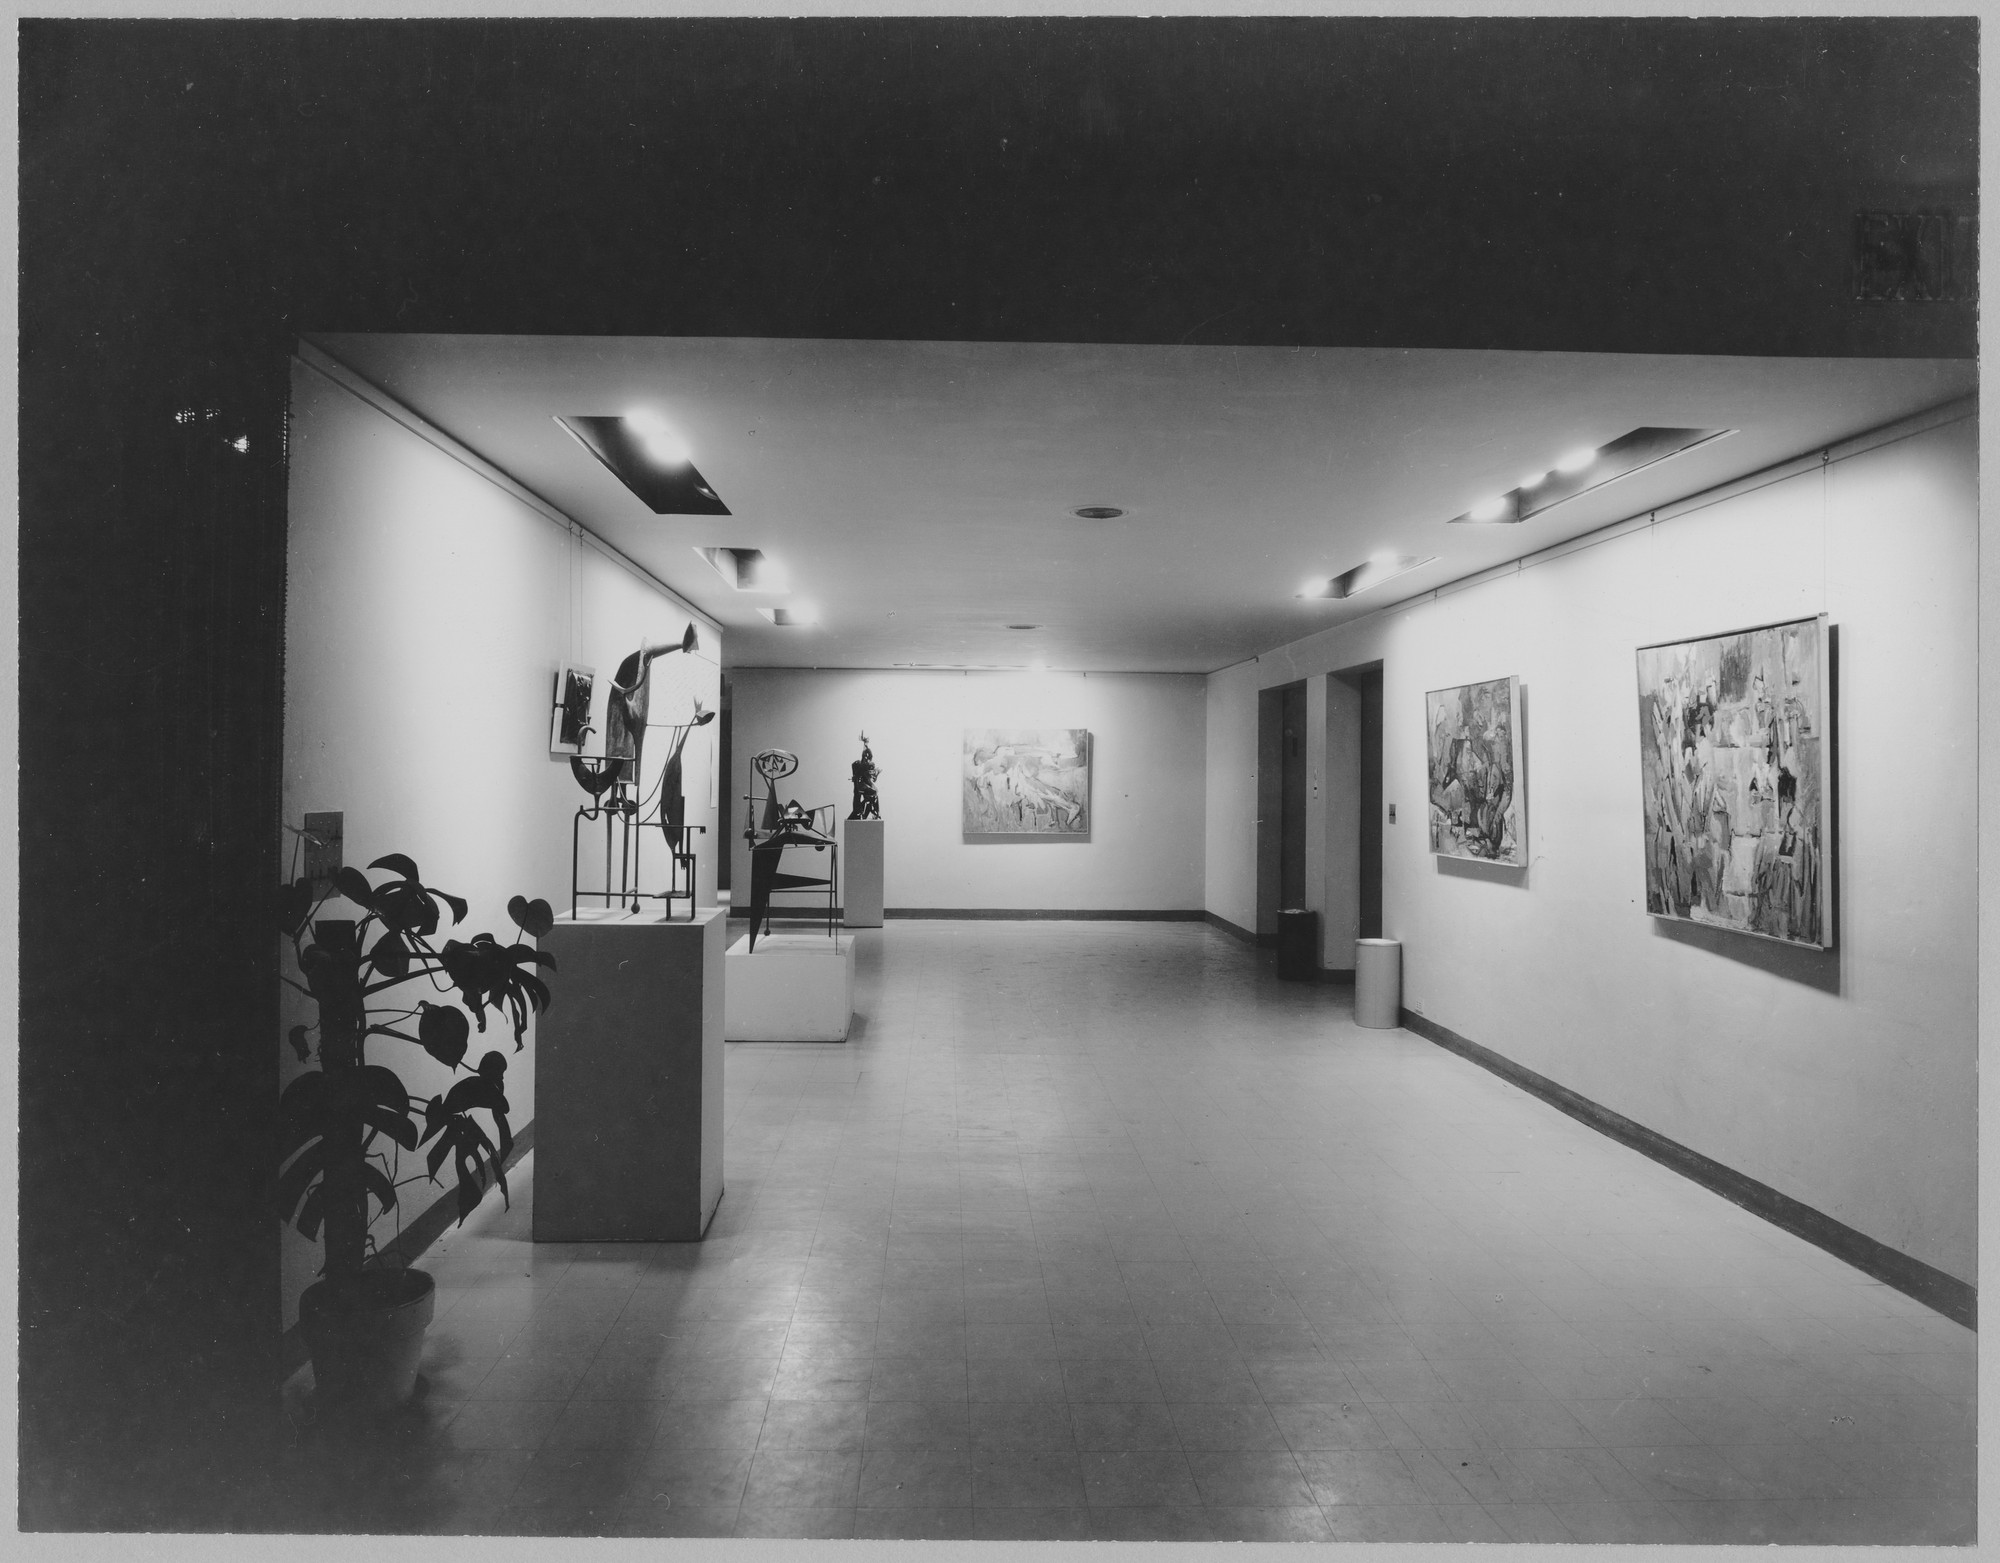 "Installation view of the exhibition, ""New Talent (VIII)."" December 6, 1955–January 22, 1956. Photographic Archive. The Museum of Modern Art Archives, New York. IN592.1. Photograph by Soichi Sunami."